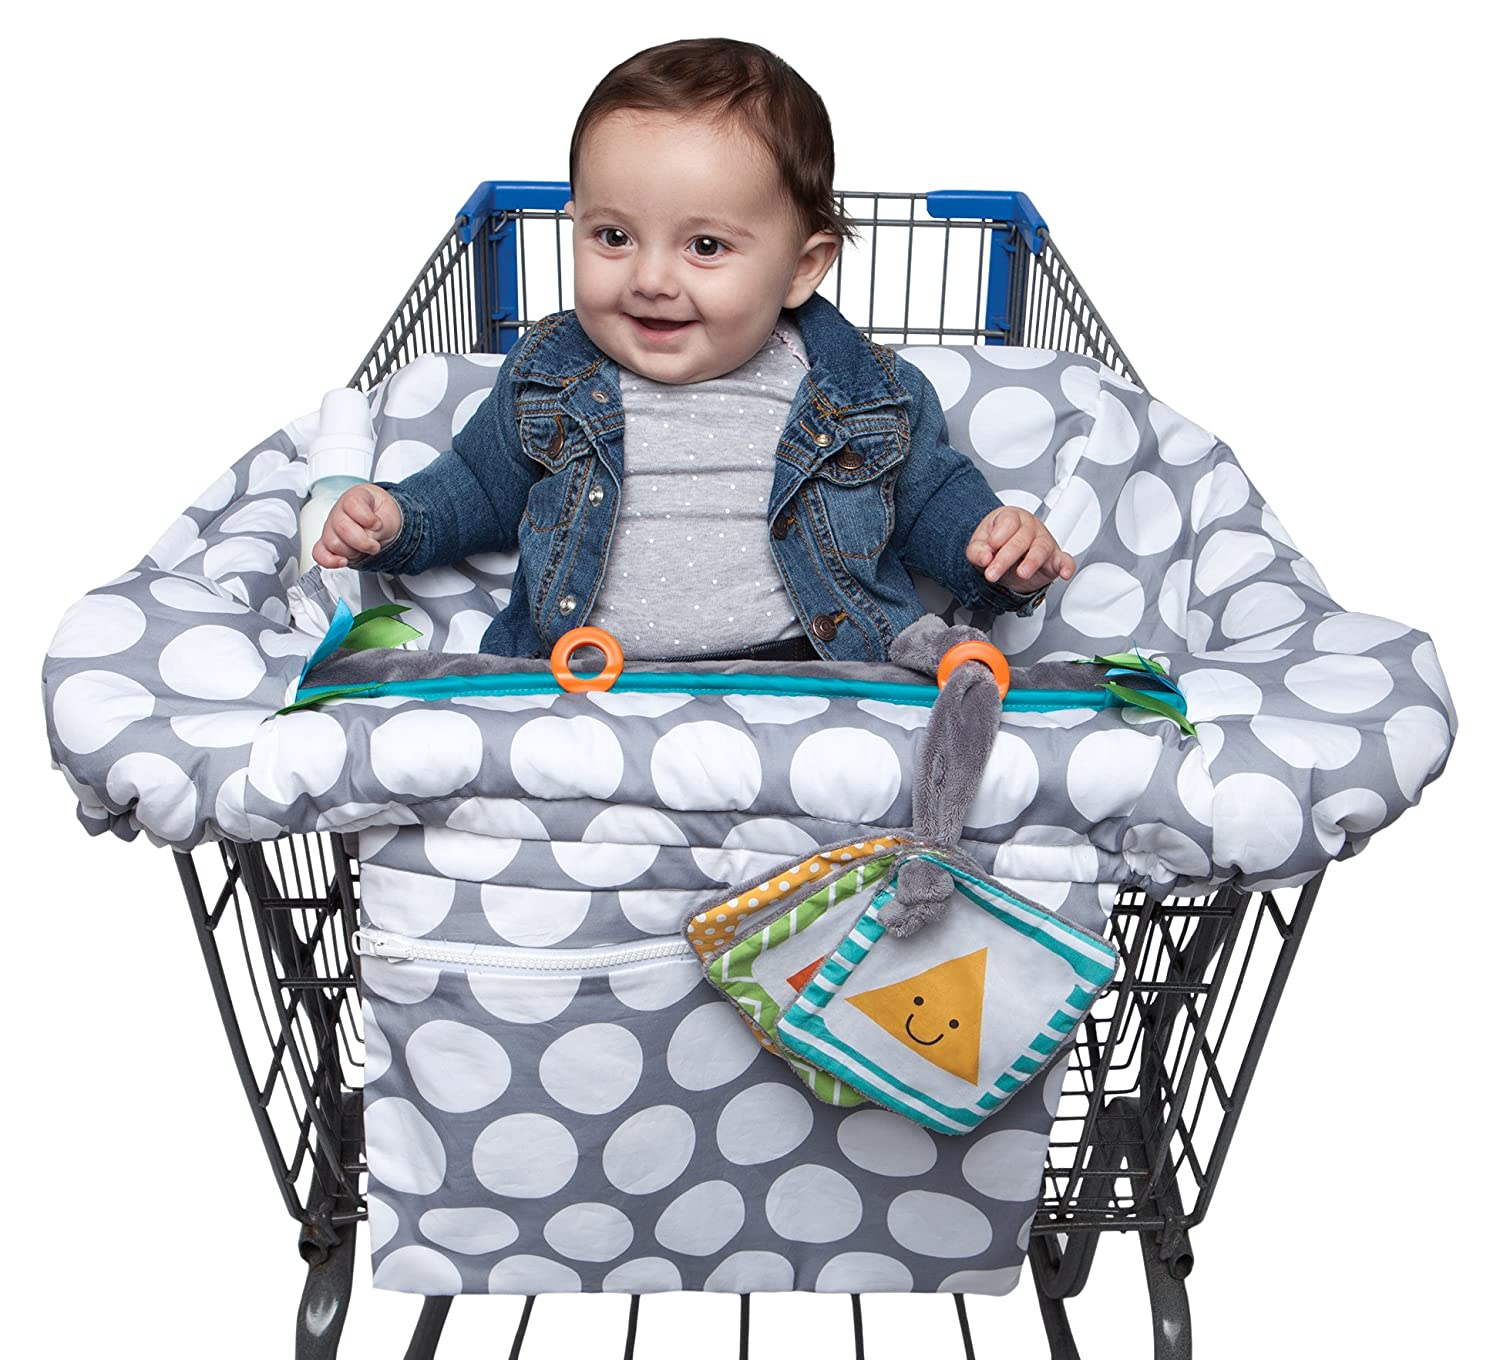 Boppy Shopping Cart and High Chair Cover—Preferred | Gray Jumbo Dots with Attached Crinkle Book Toy| With Integrated Storage Pouch | 2-Point Safety Belt | Wipeable, Machine Washable | 6-48 months